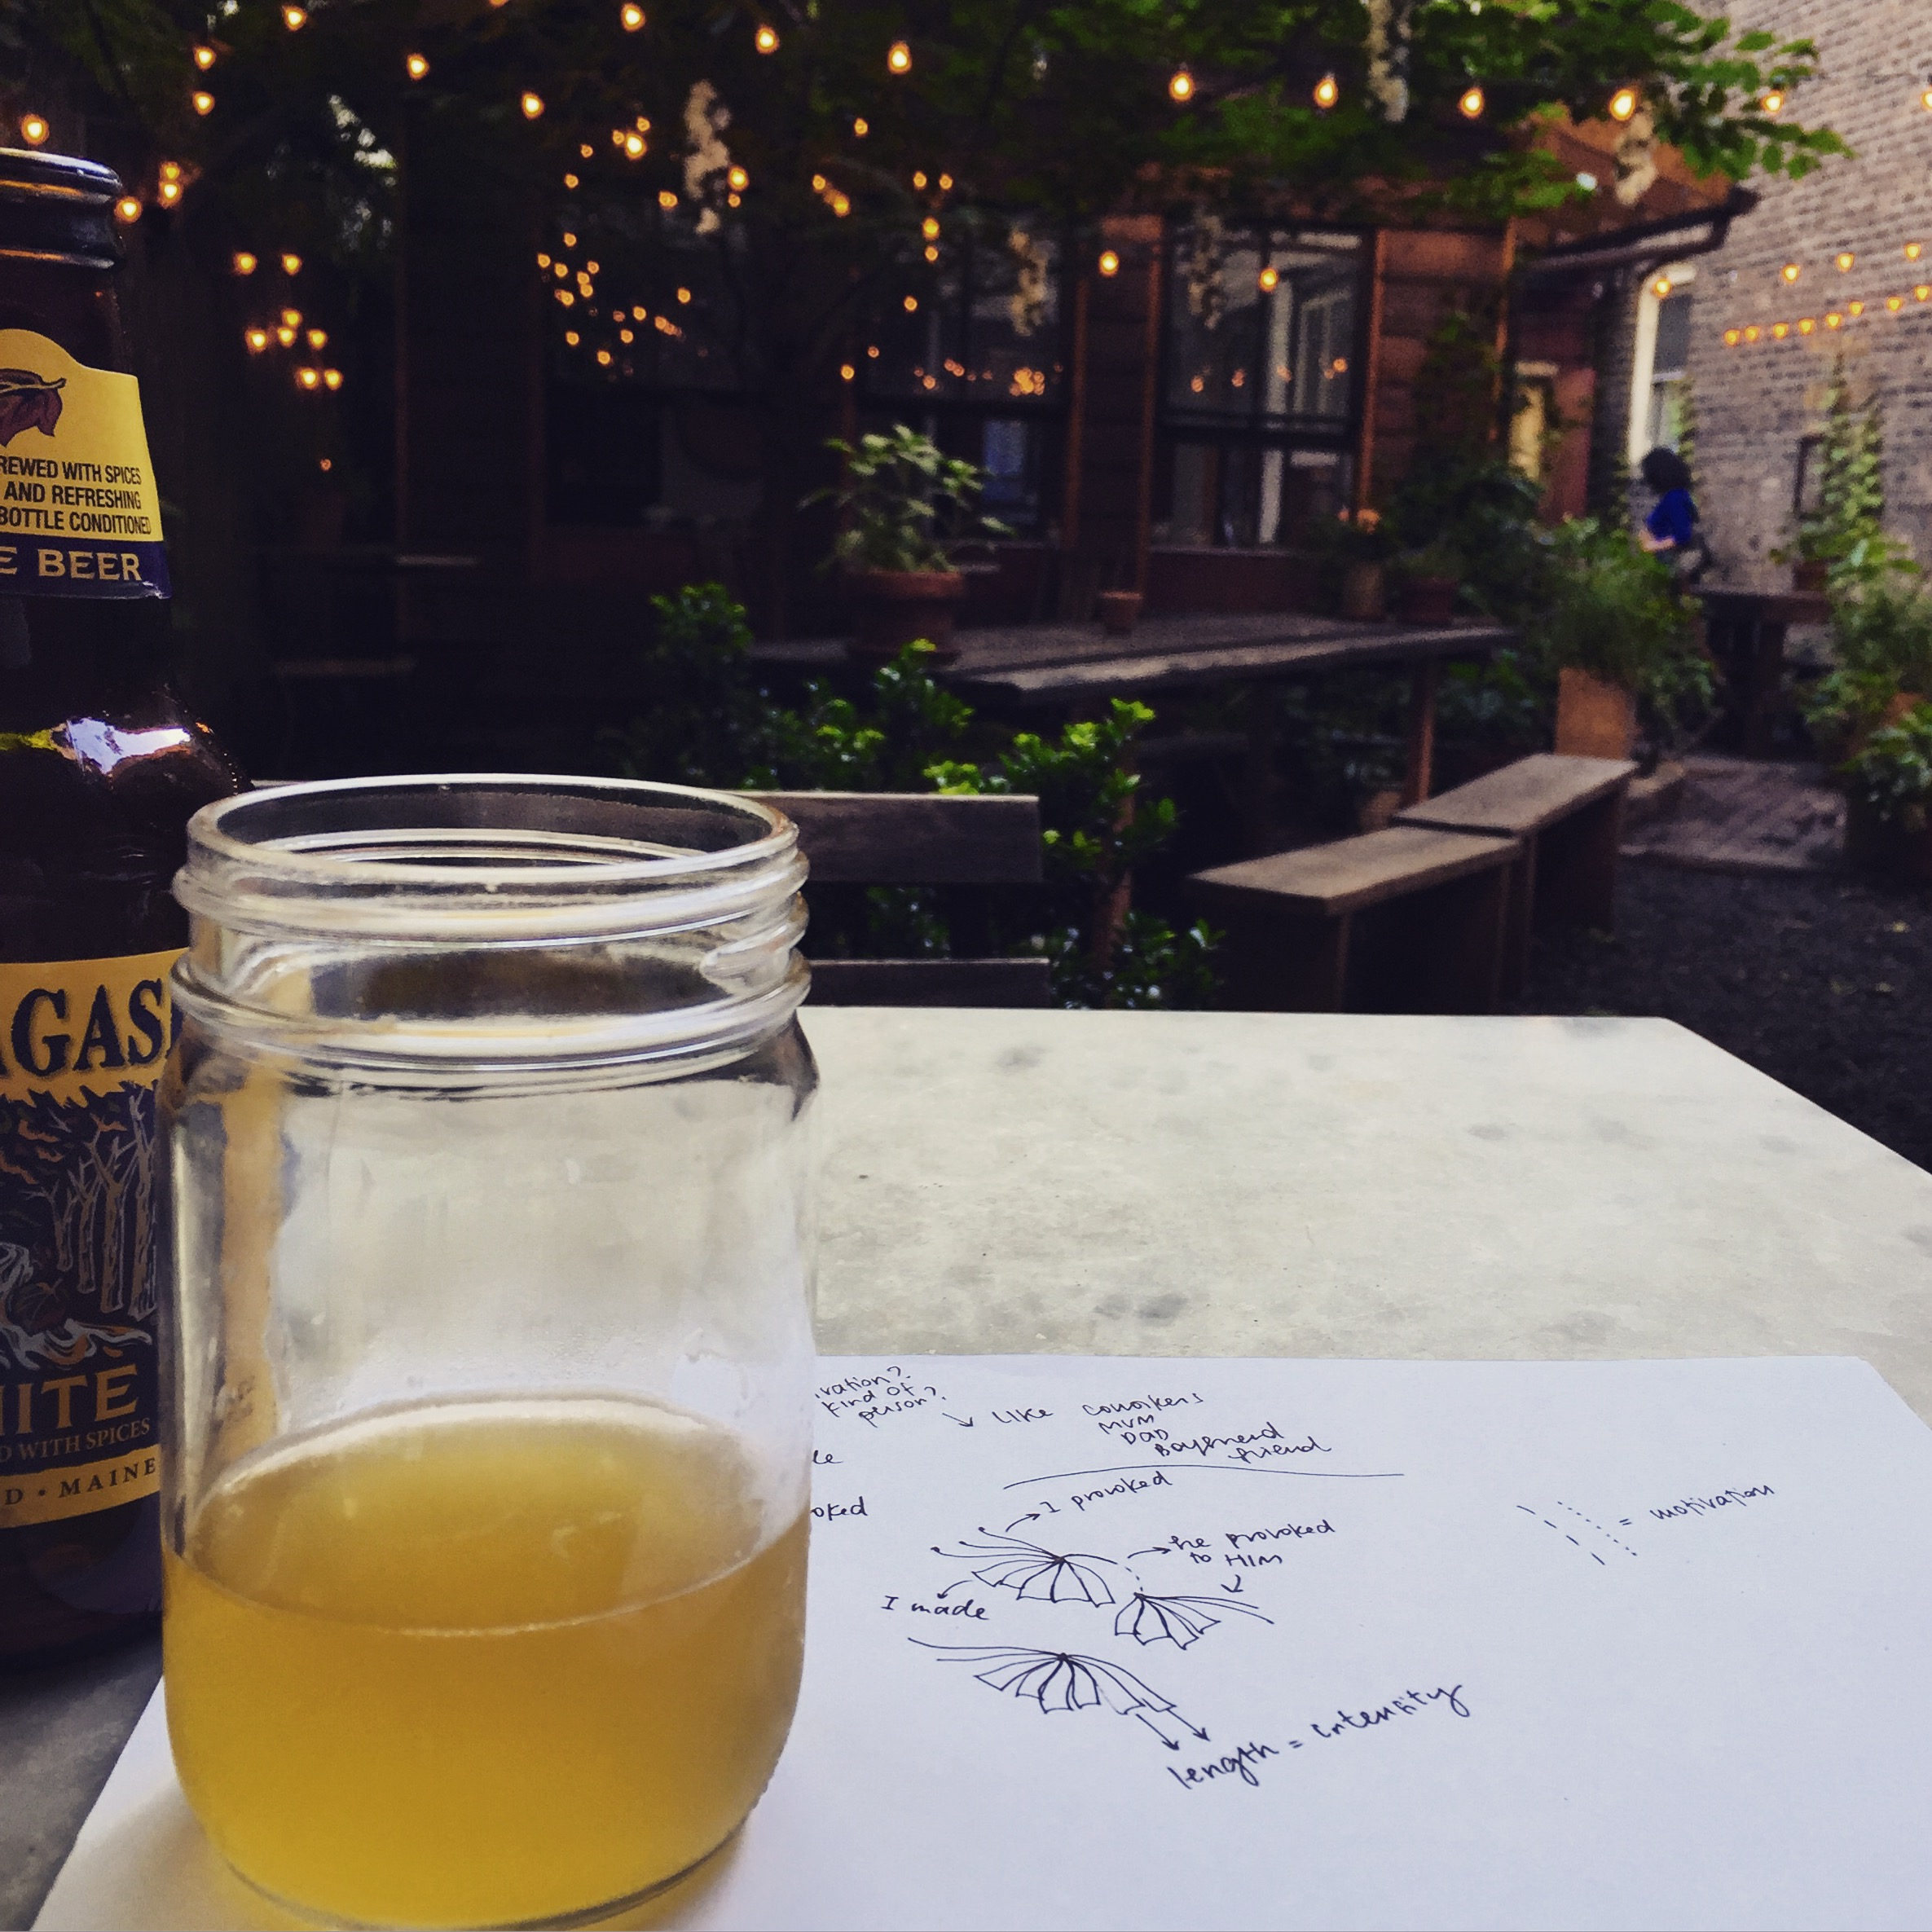 first ideas over drinks while waiting for best friend in our secret backyard in Brooklyn